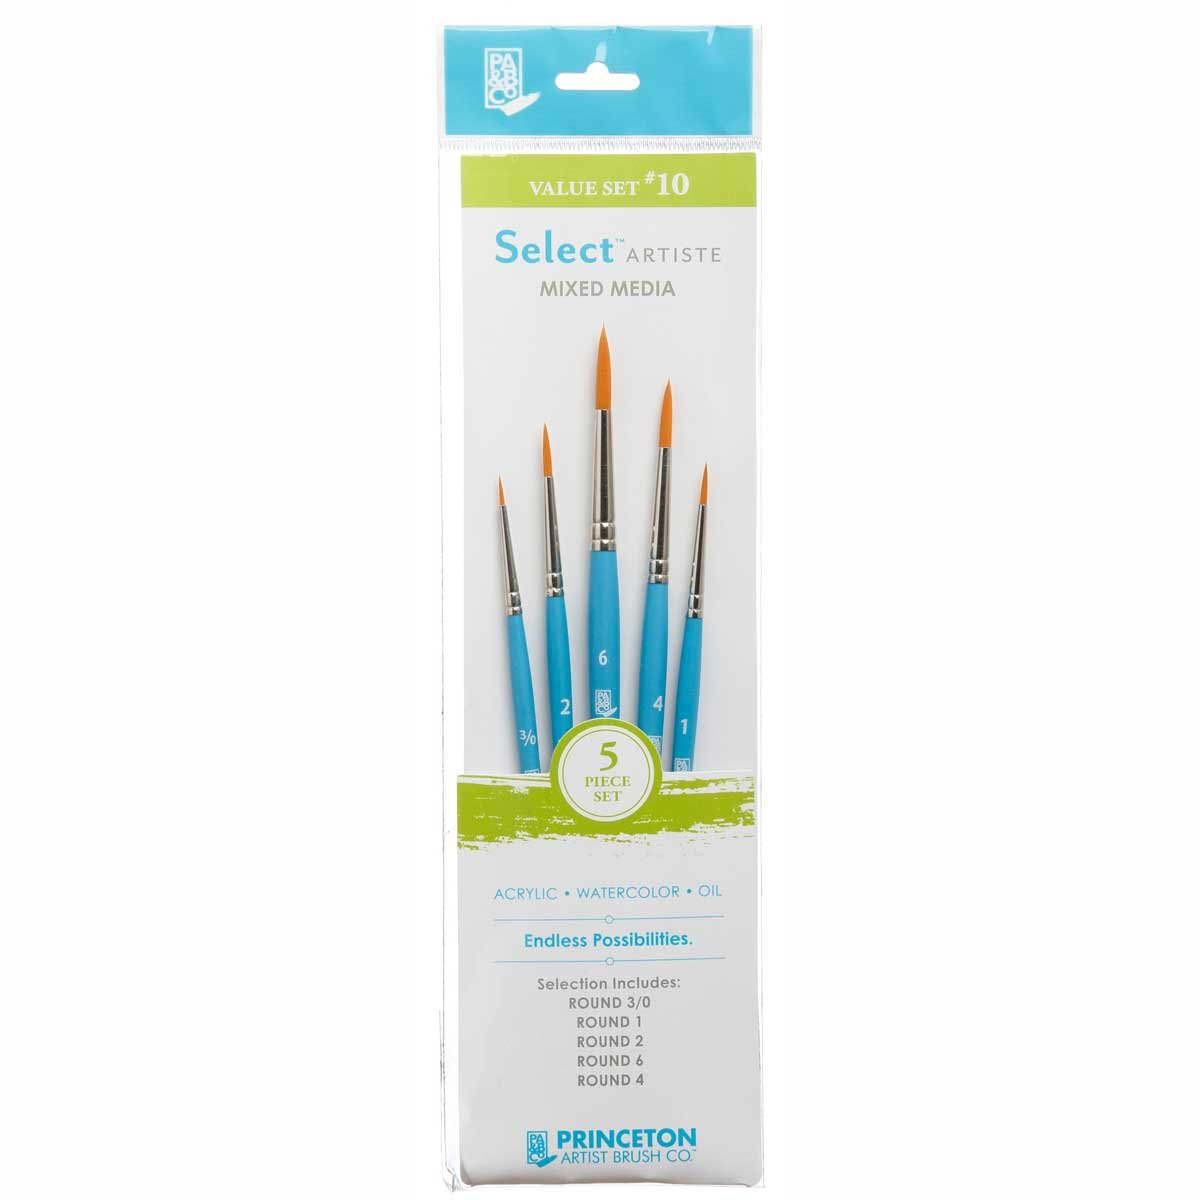 Mixed-Media Brushes for Acrylic Oil 5 Piece Value Set 110 Princeton Select Artiste Watercolor Series 3750